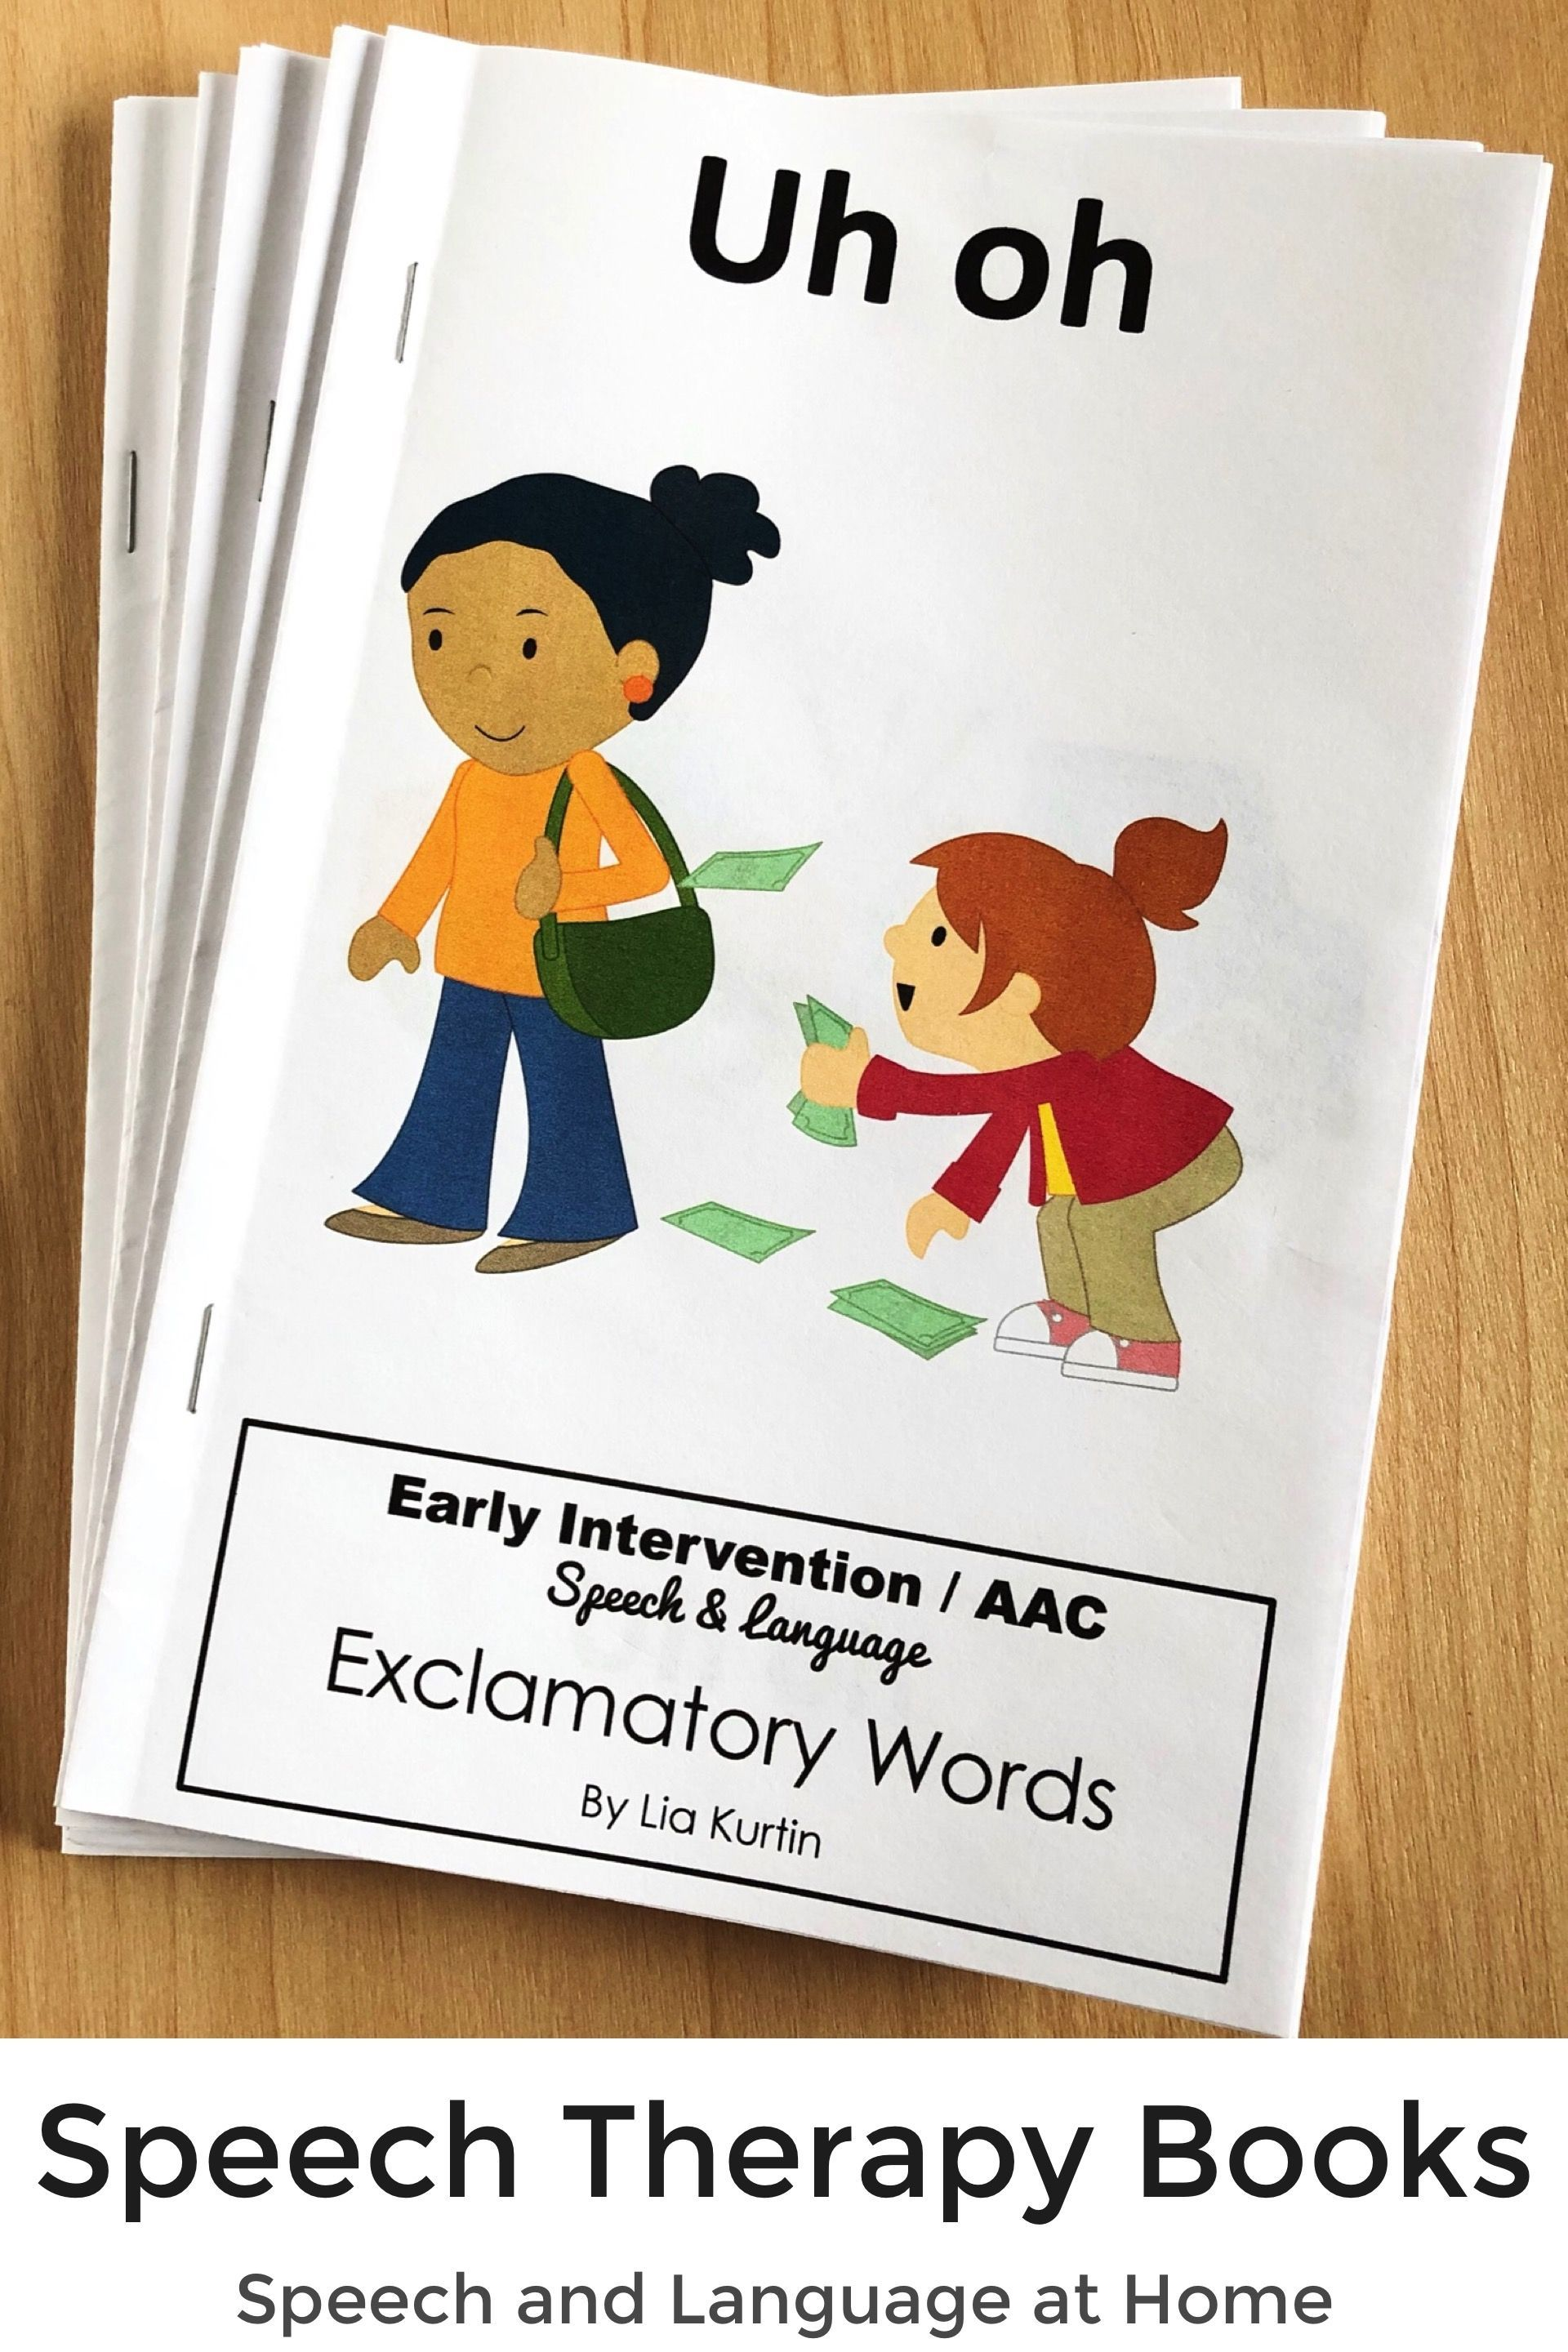 Exclamatory Word Books For Early Intervention Bundle Set